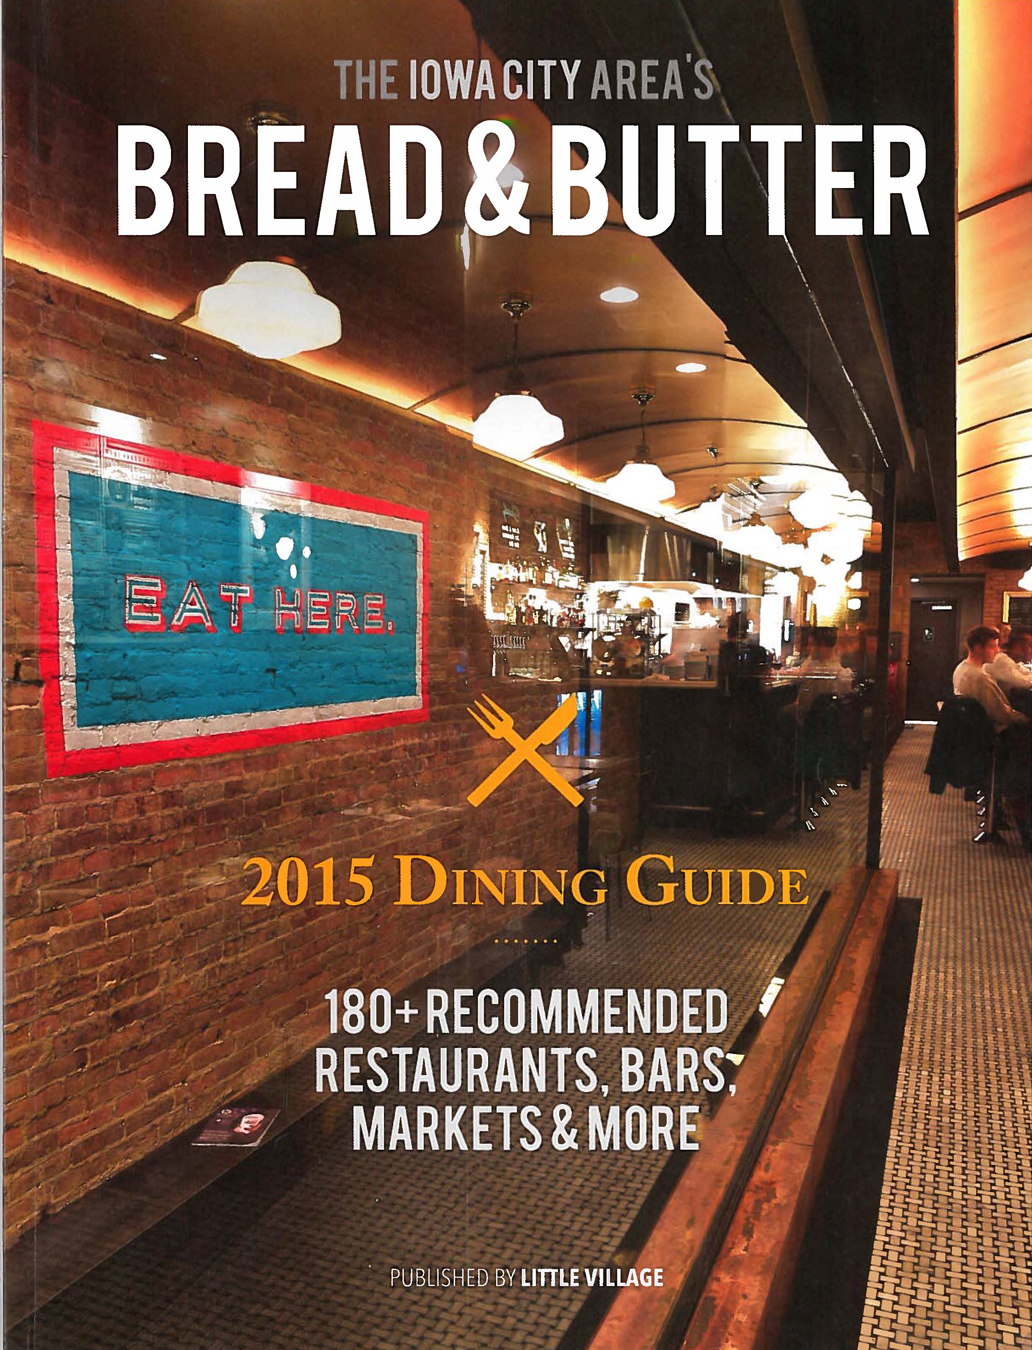 Pullman_restaurant_bread_and_butter_72dpi